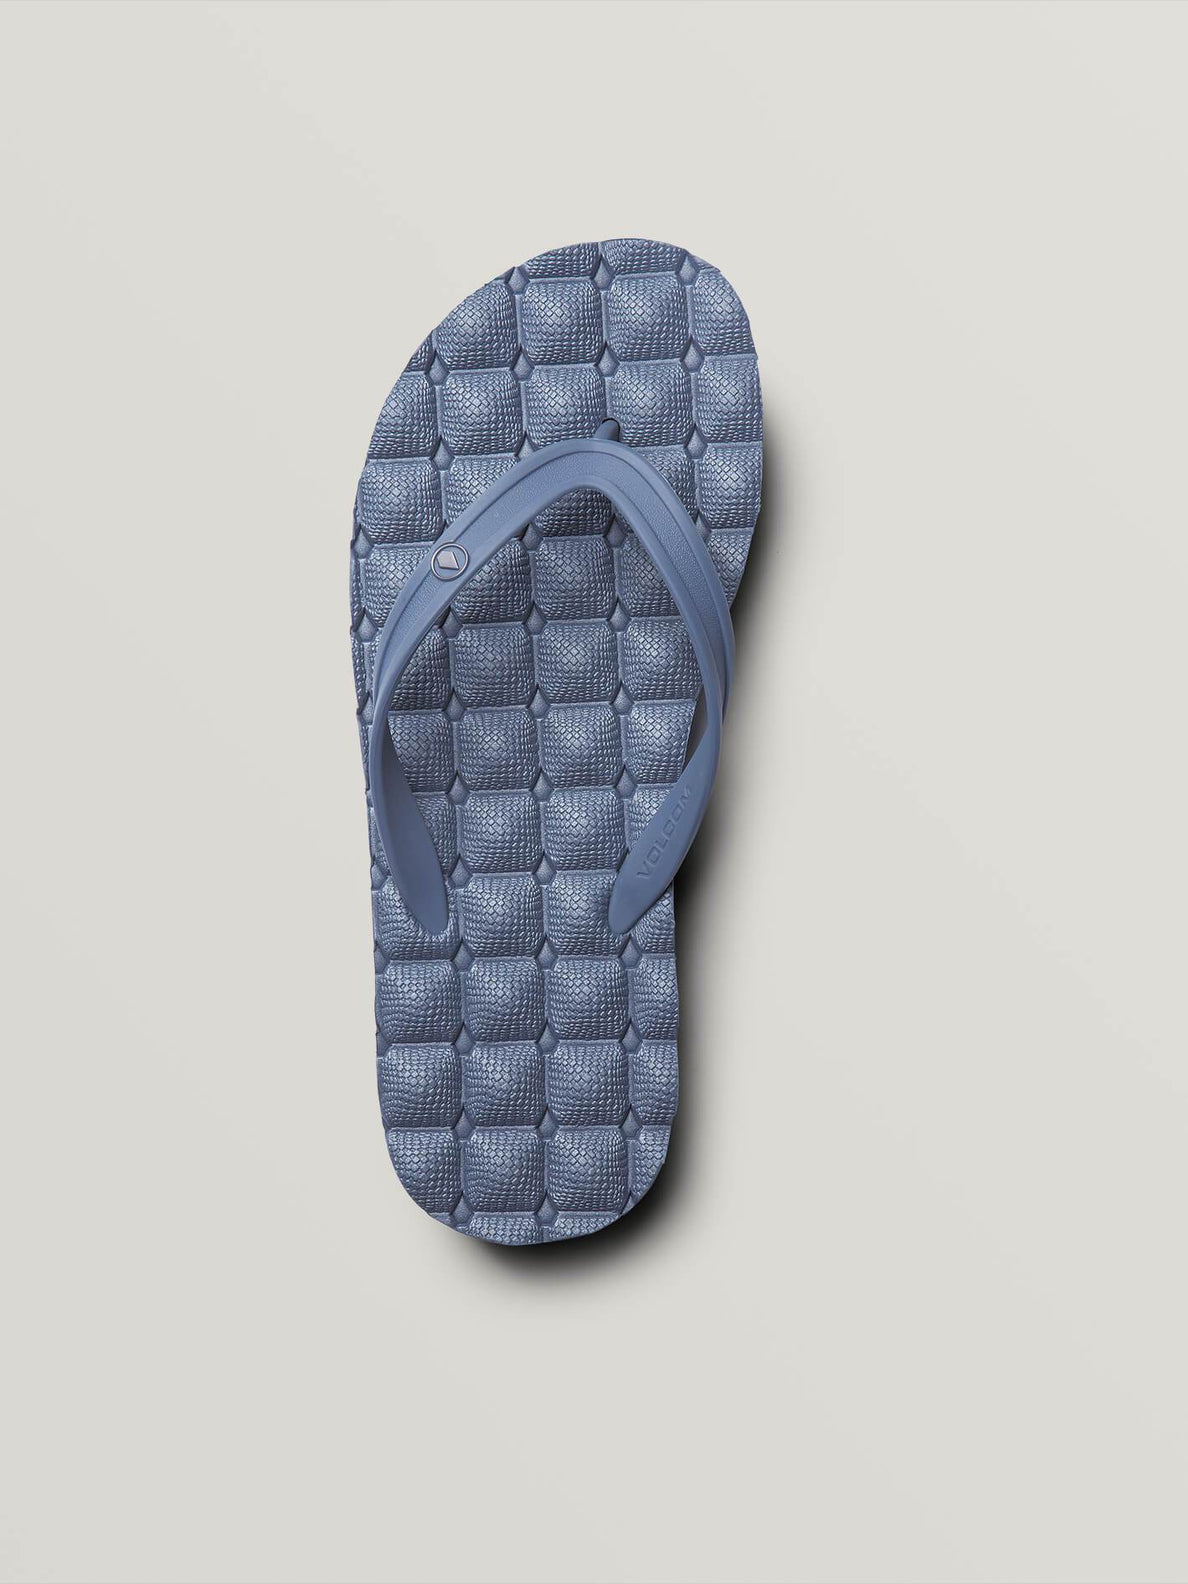 Recliner Rubber 2 Sandals In Slate Blue, Alternate View